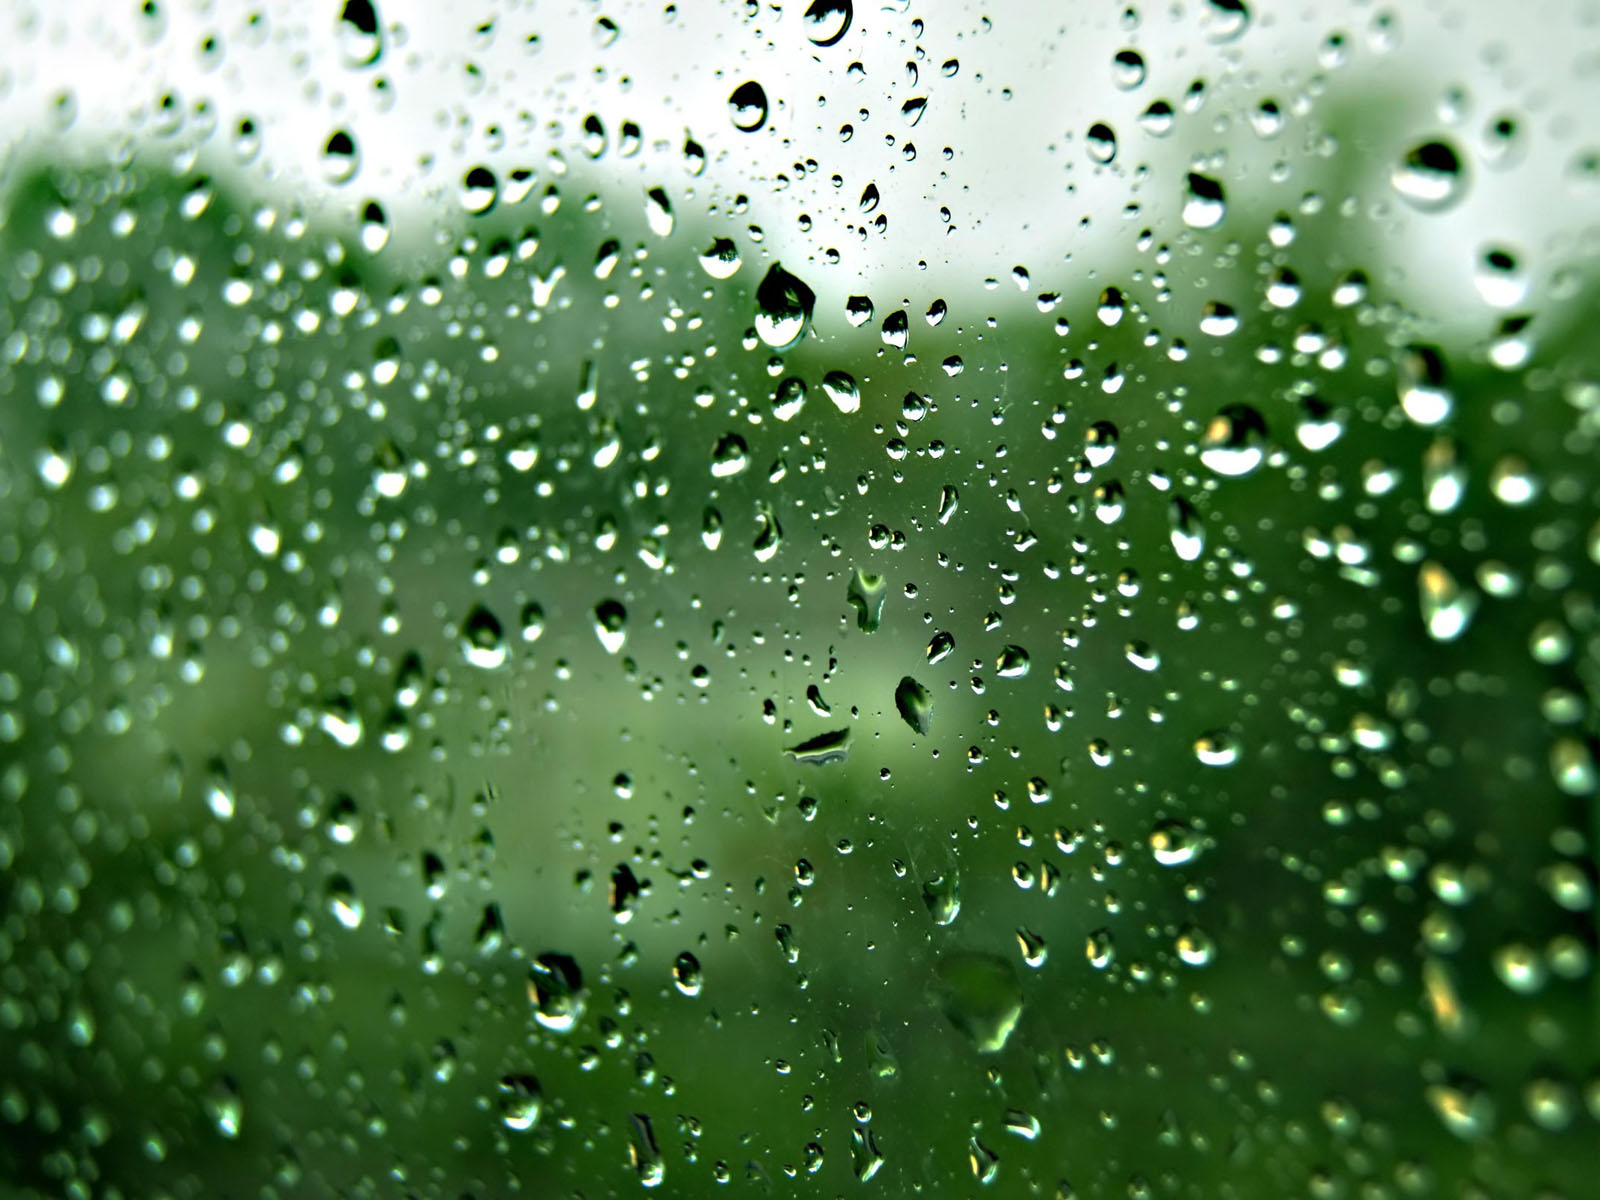 wallpapers rain drops on glass wallpapers